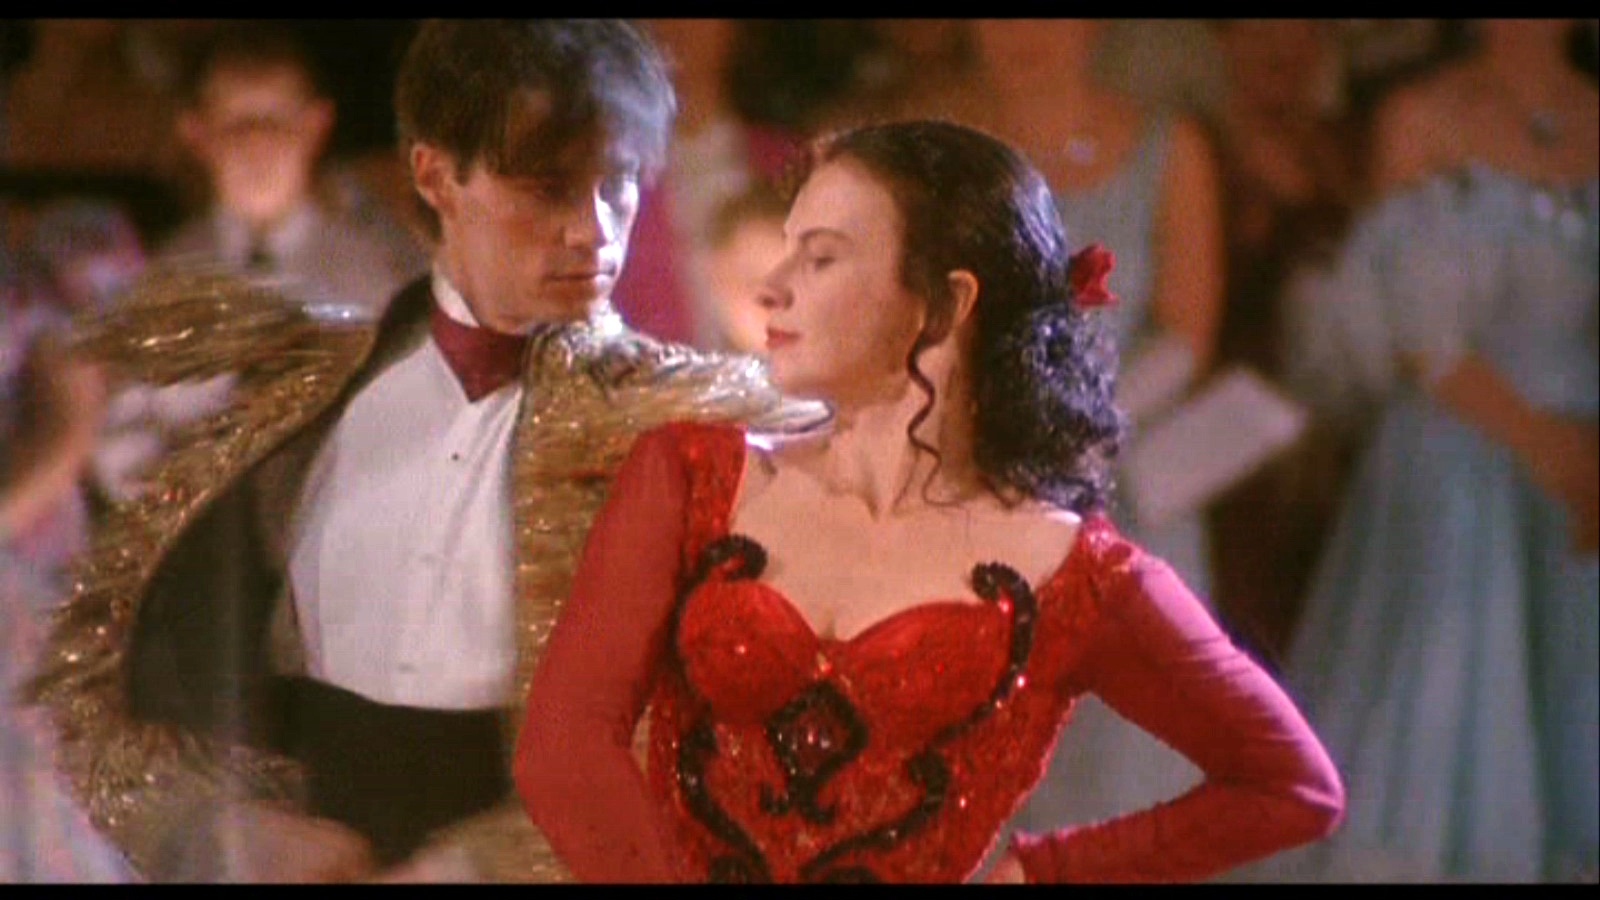 https://i1.wp.com/images.fanpop.com/images/image_uploads/Strictly-Ballroom-baz-luhrmann-749298_1600_900.jpg